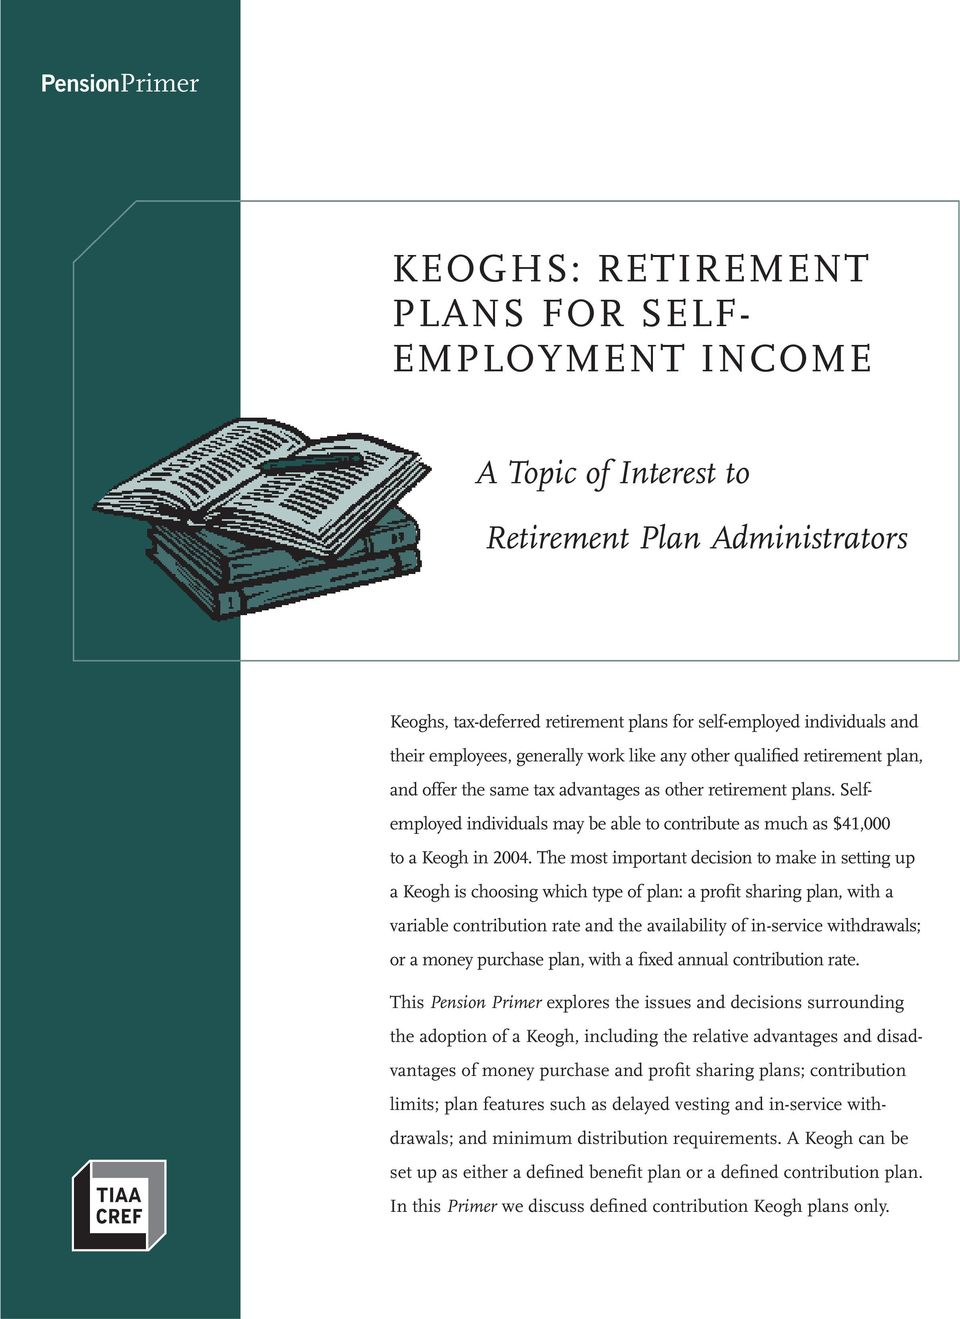 Selfemployed individuals may be able to contribute as much as $41,000 to a Keogh in 2004.